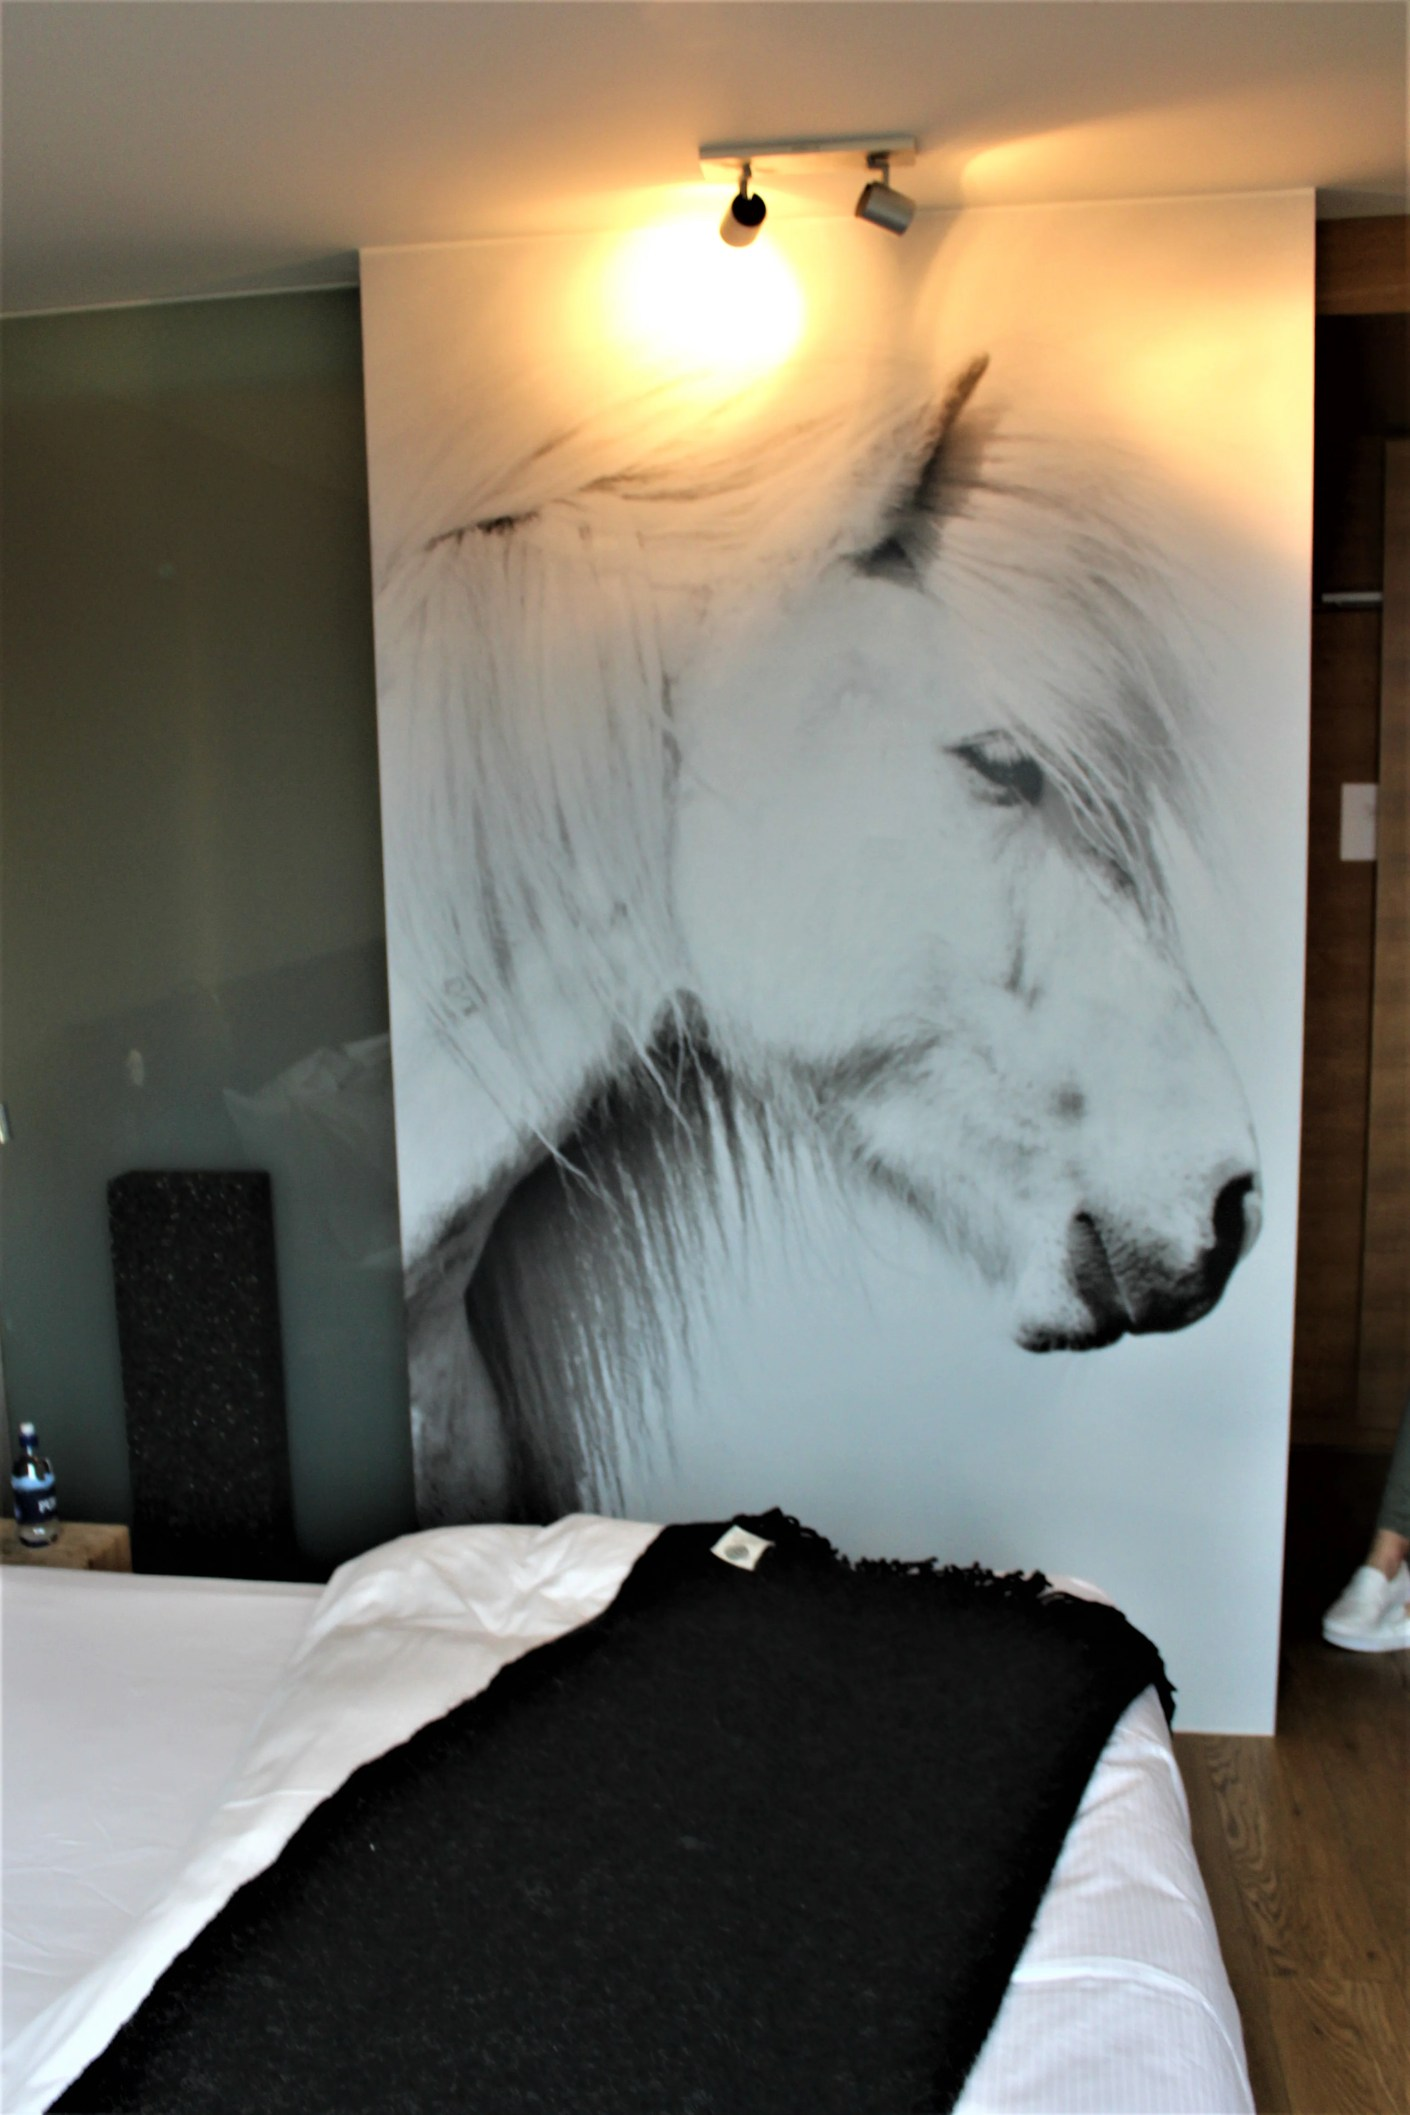 A mural featuring a quintessential icelandic horse was displayed constantly thoughtout the property.